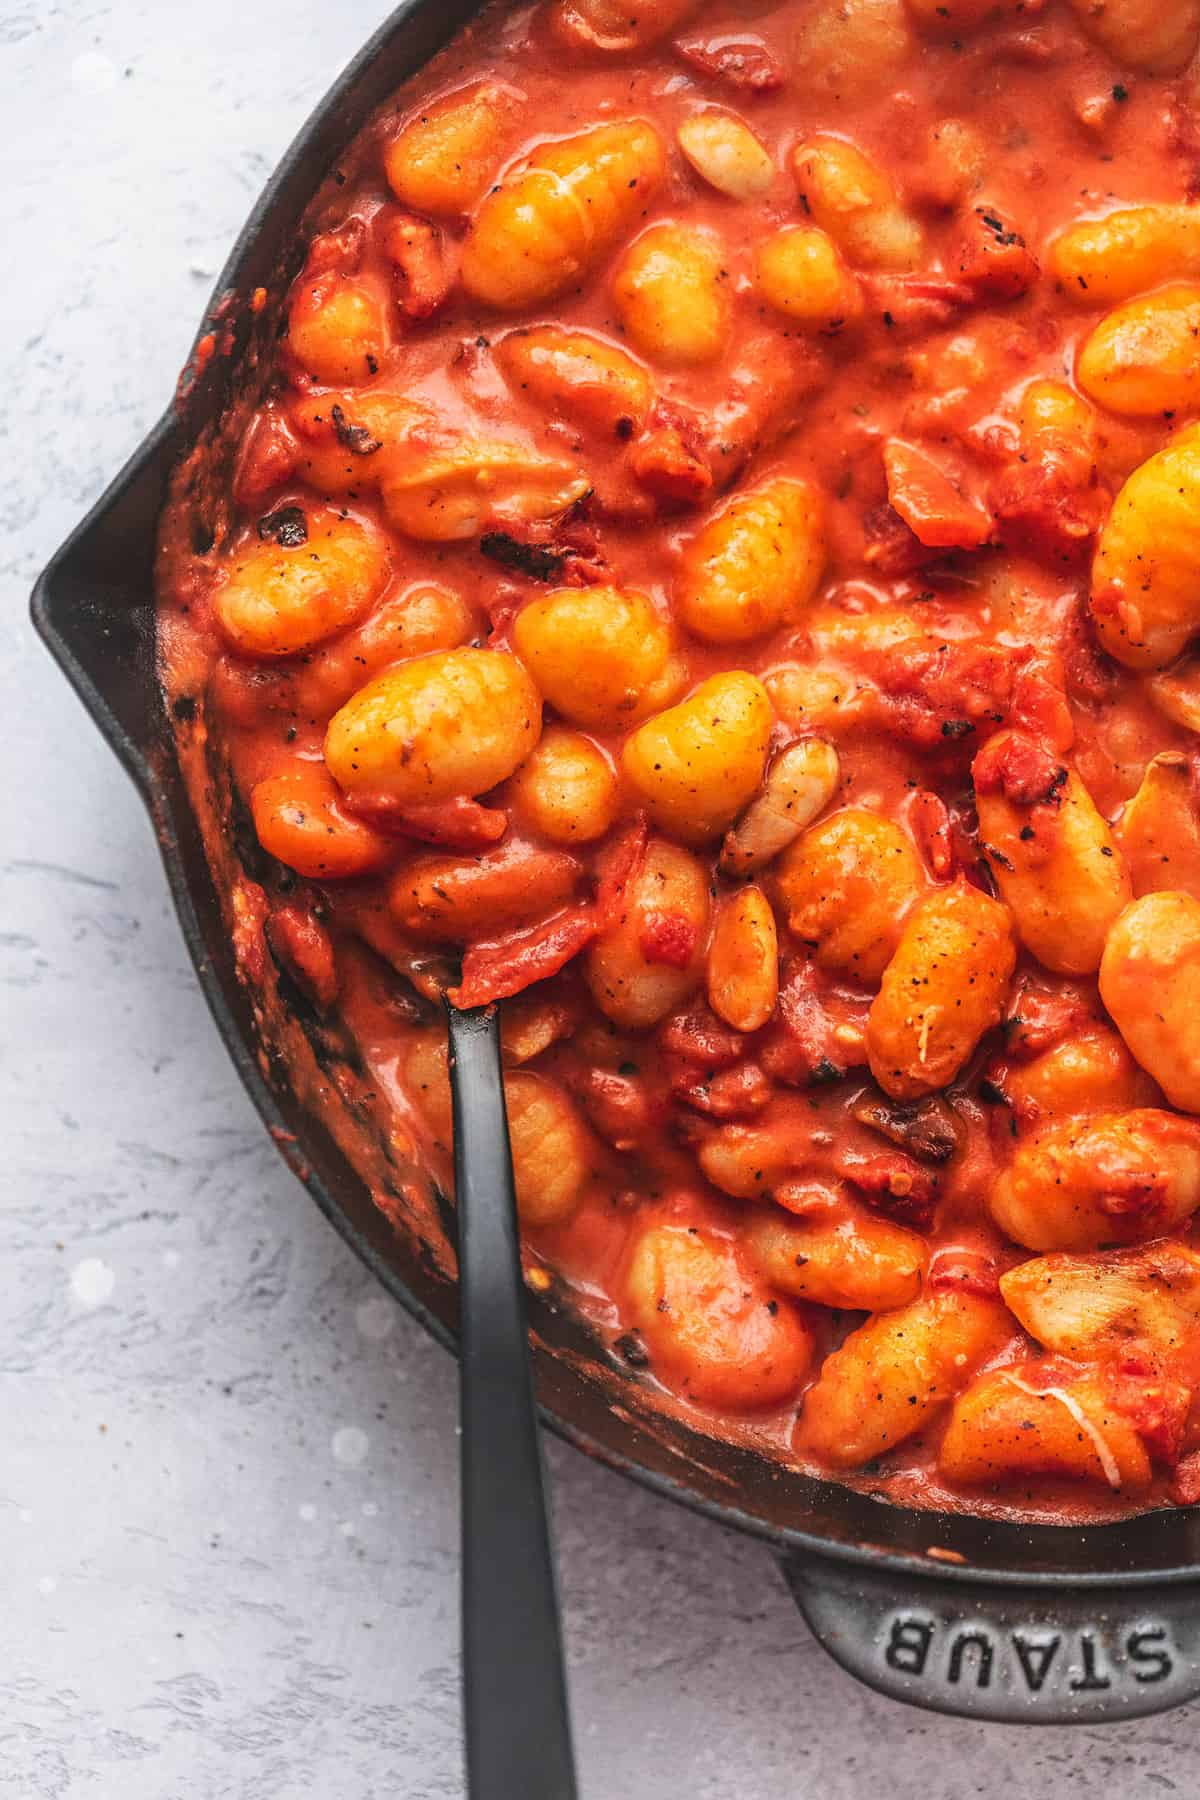 up close gnocchi with tomato sauce in a skillet